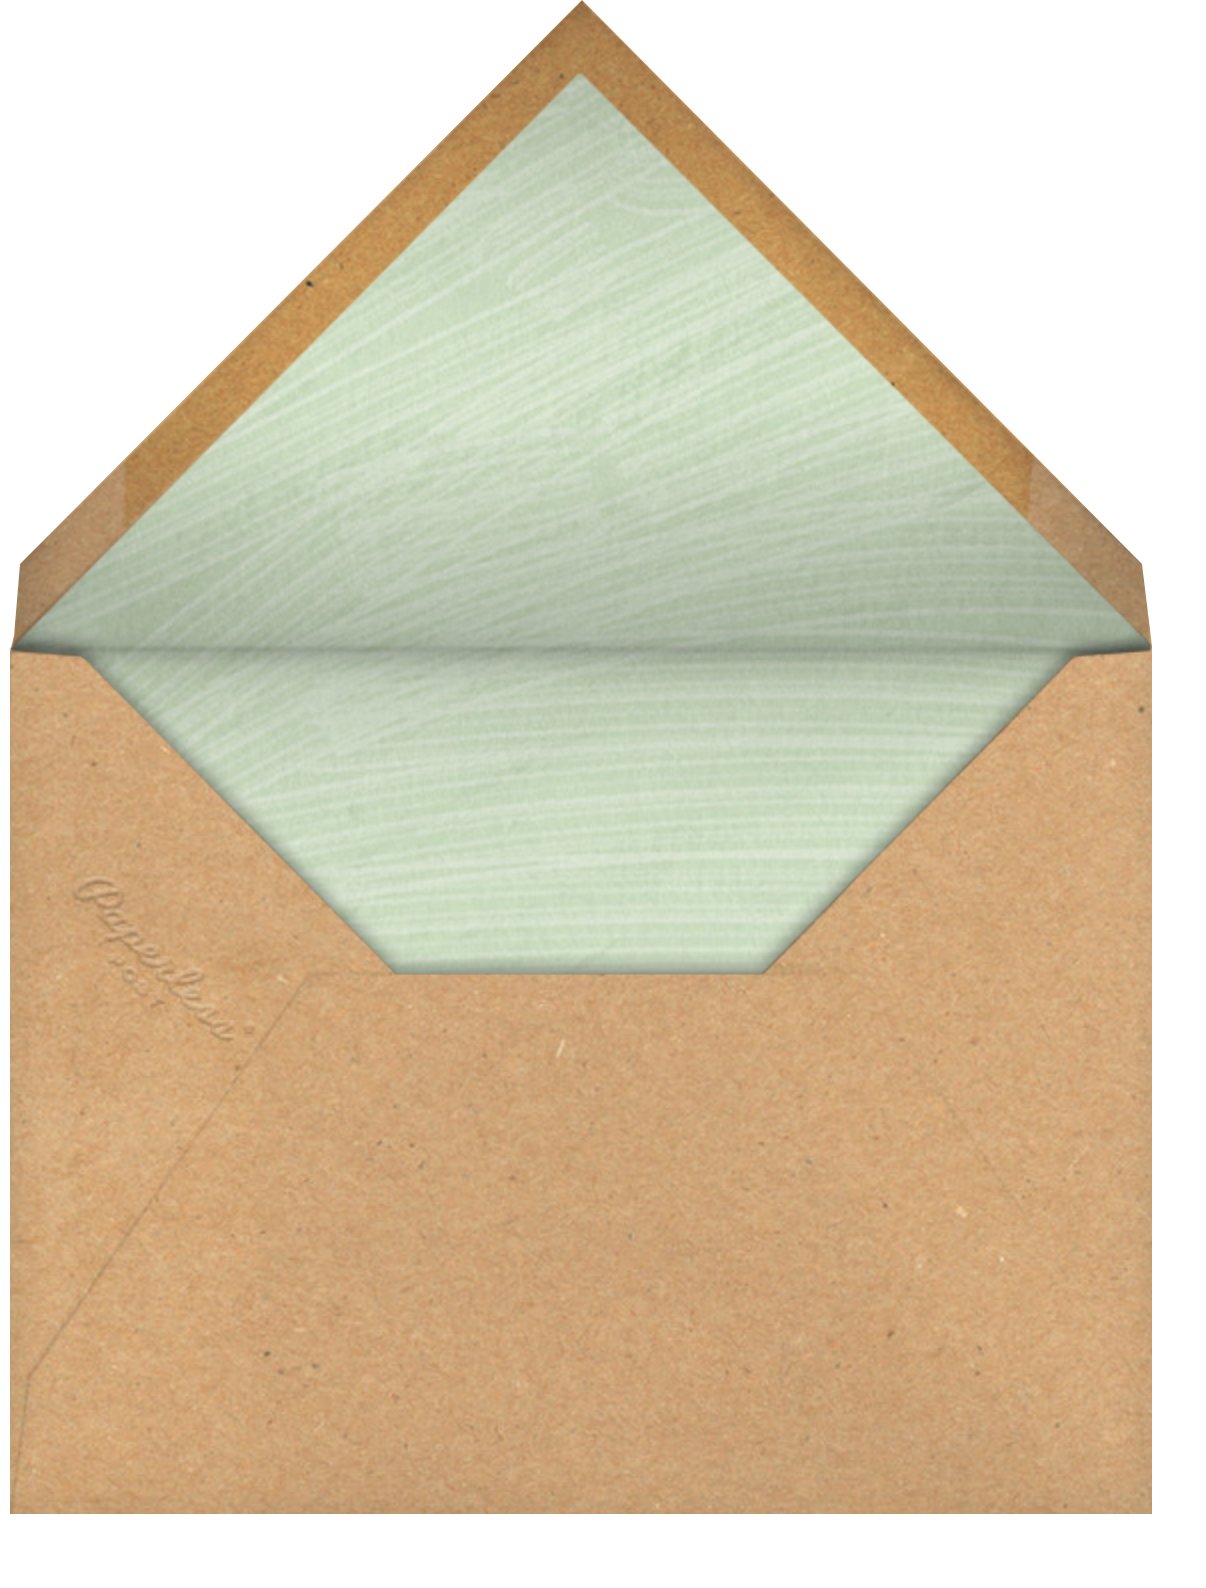 Hanging Plants - Paperless Post - Just because - envelope back